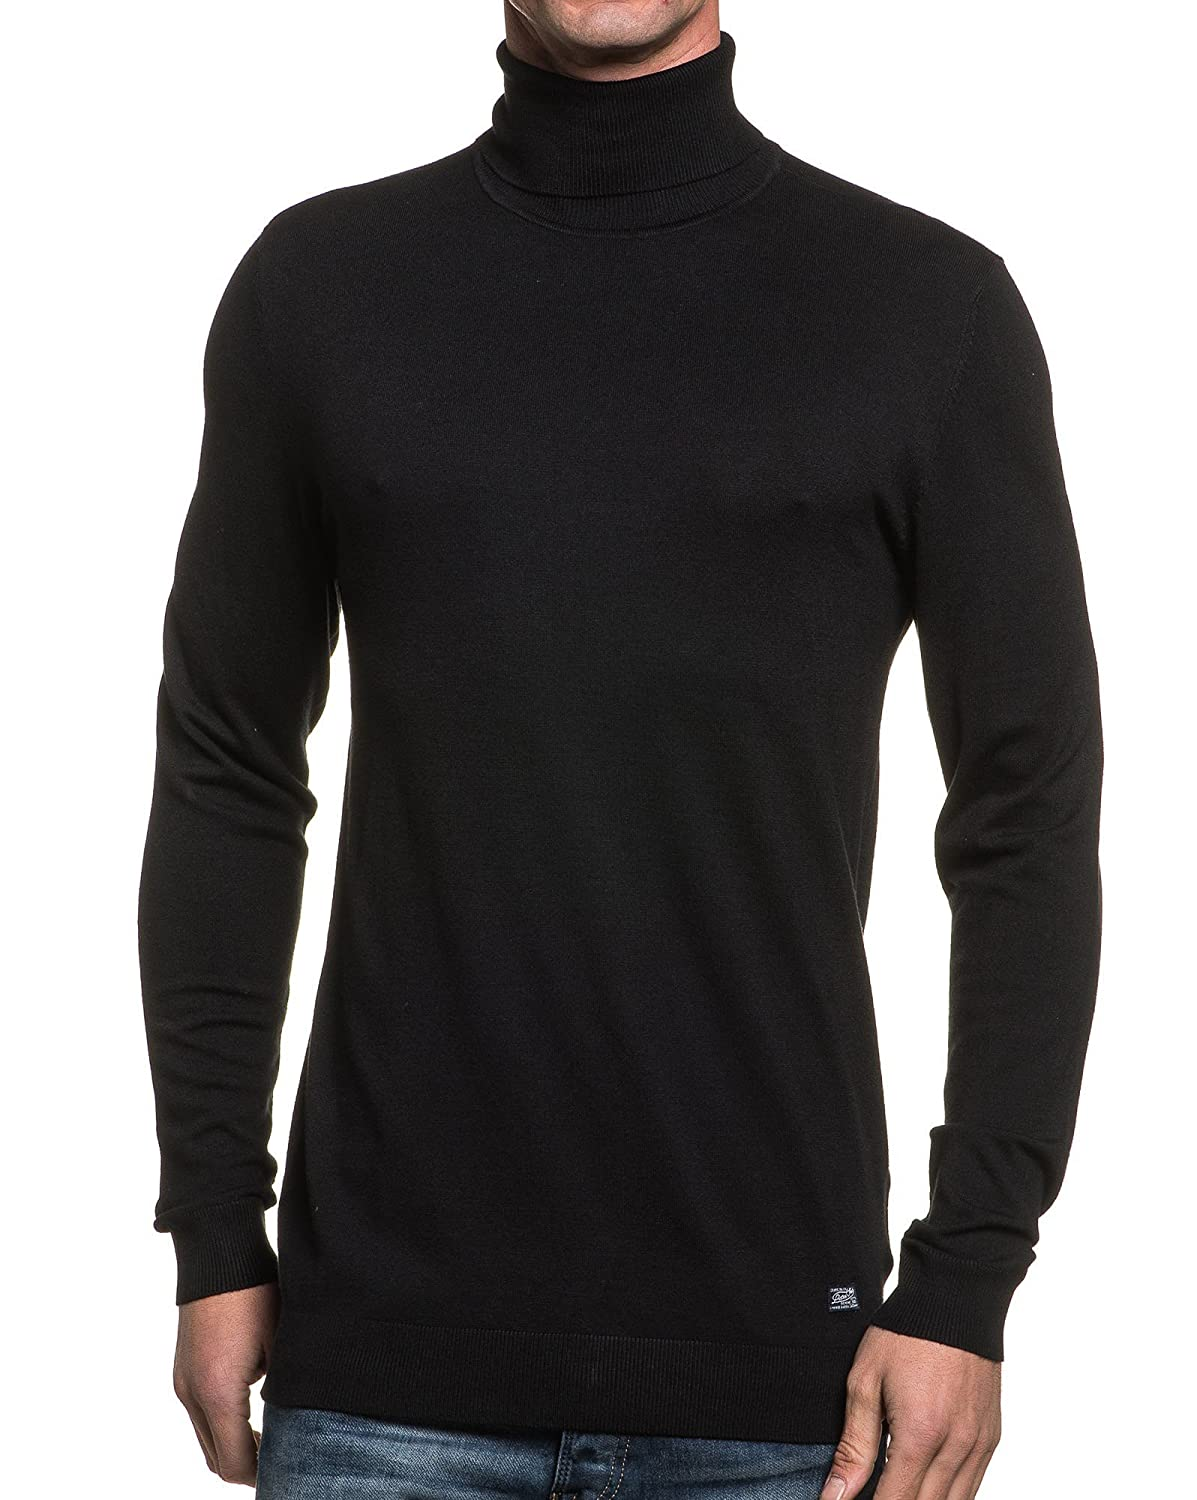 Petrol Industries - basic black turtleneck sweater man